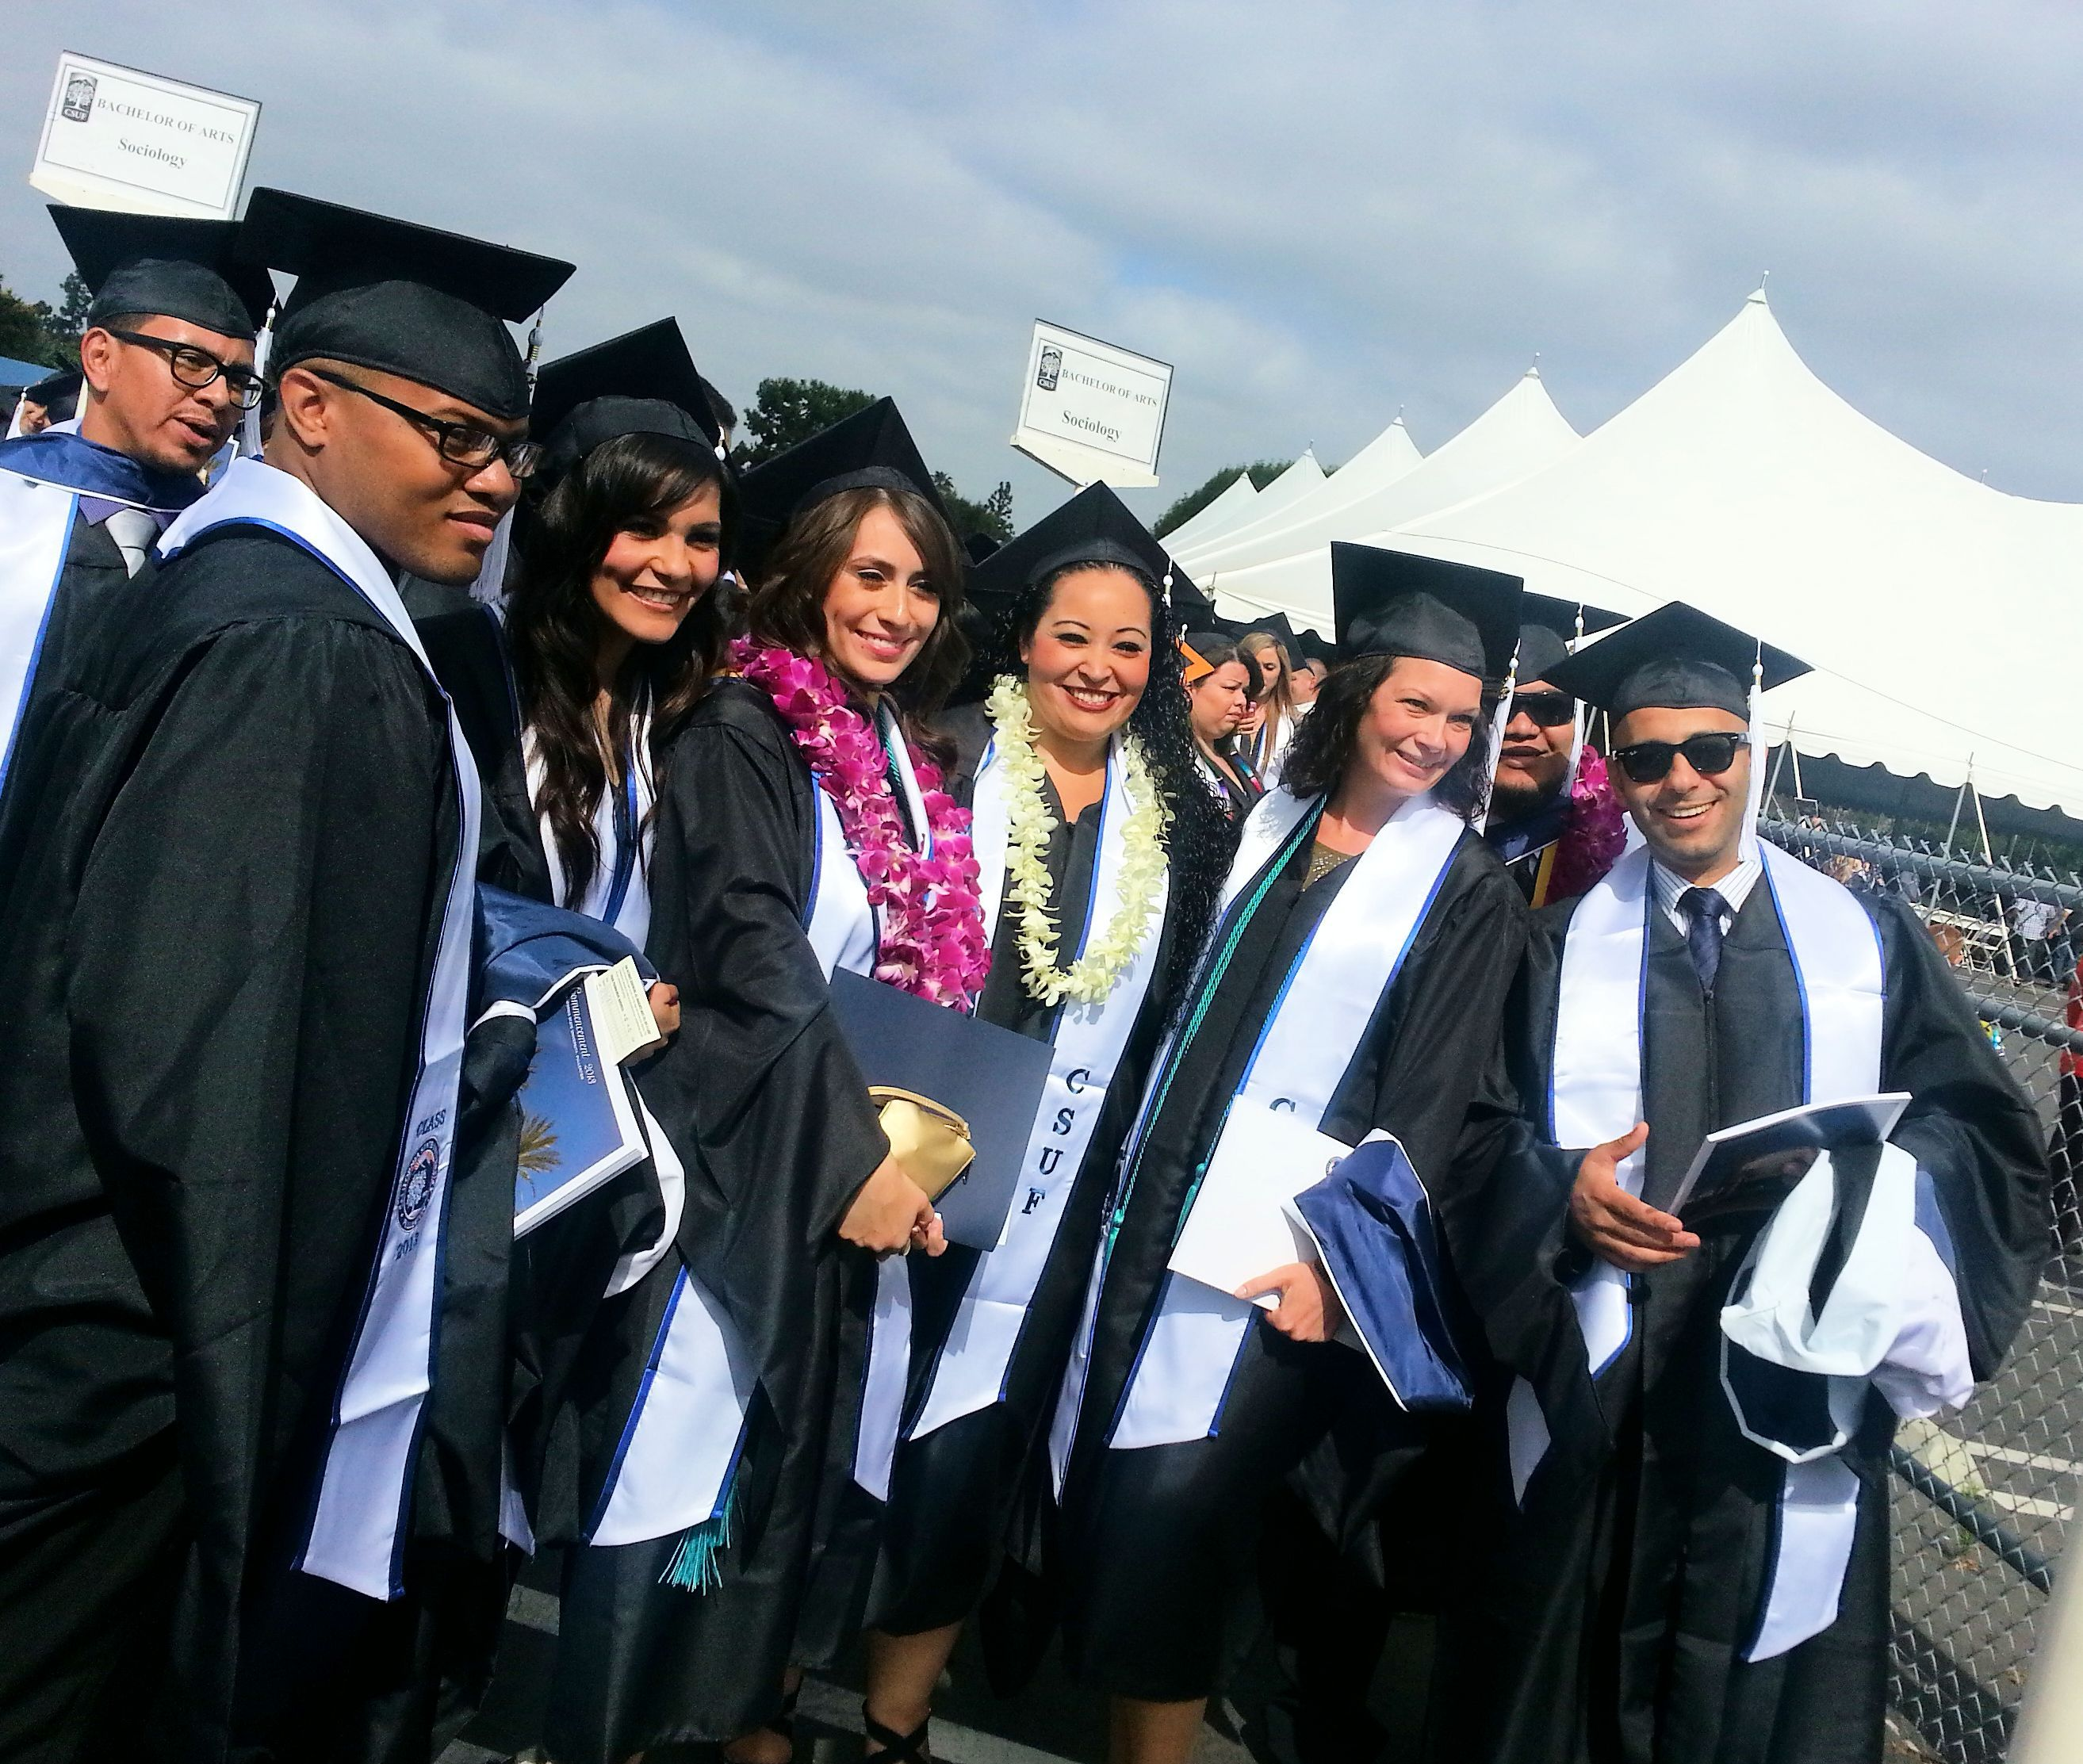 Cal State Fullerton Graduation 2020.Application Process Department Of Sociology Csuf